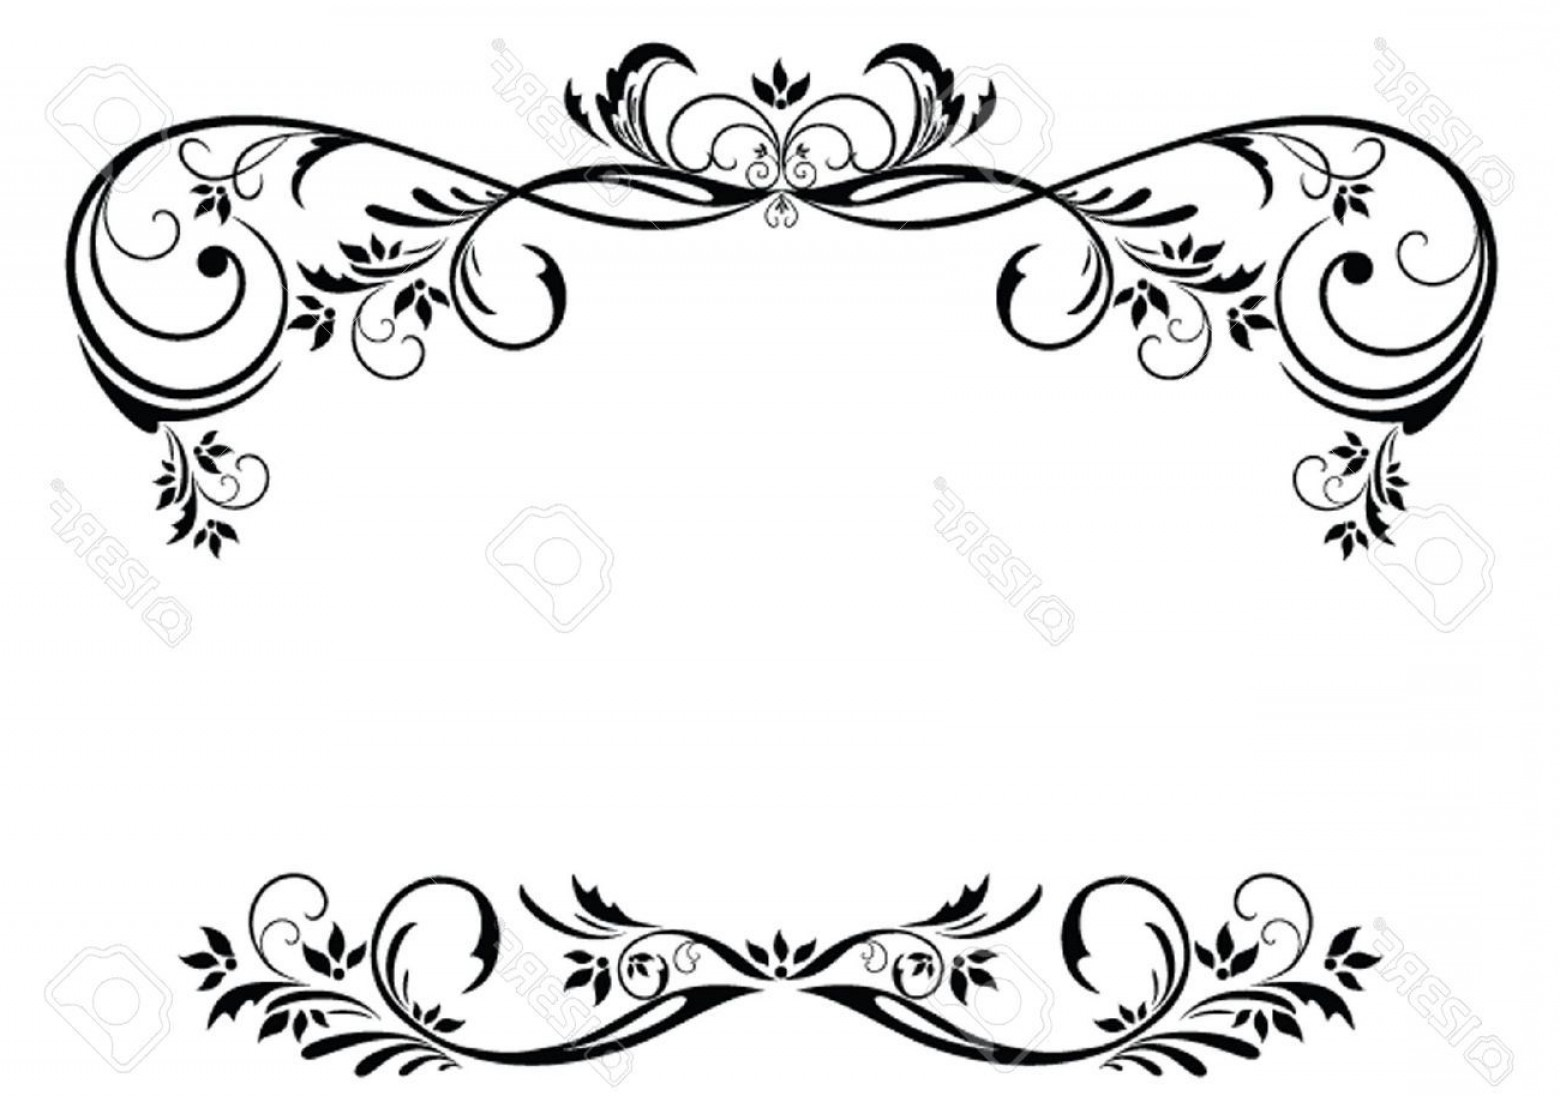 Floral border vector clipart picture royalty free download Vintage Floral Border Vector Free Ff | SOIDERGI picture royalty free download